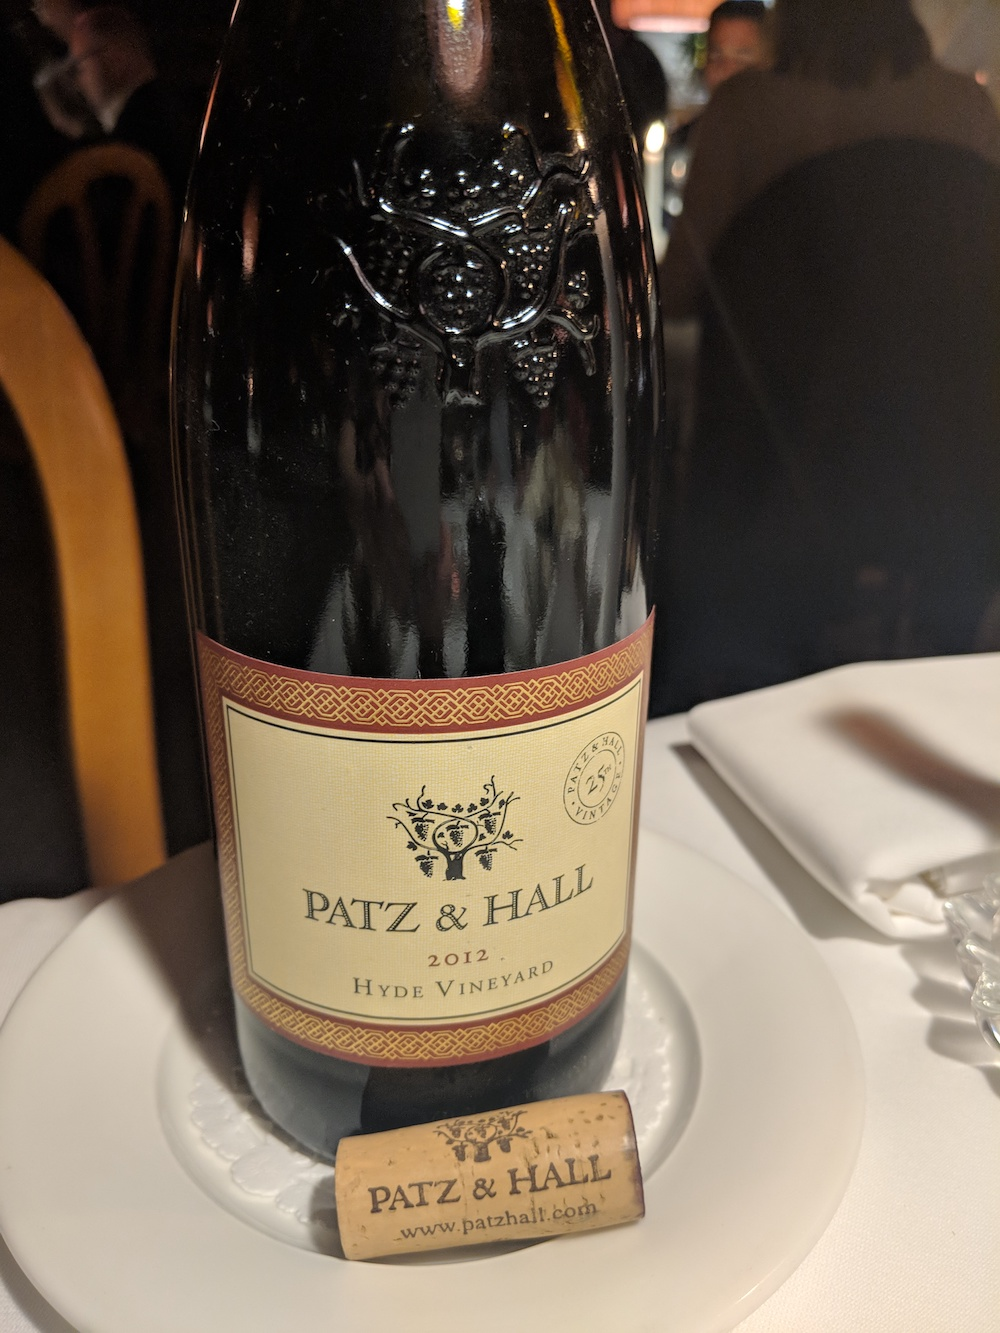 Patz and Hall Pinot Noir 2012